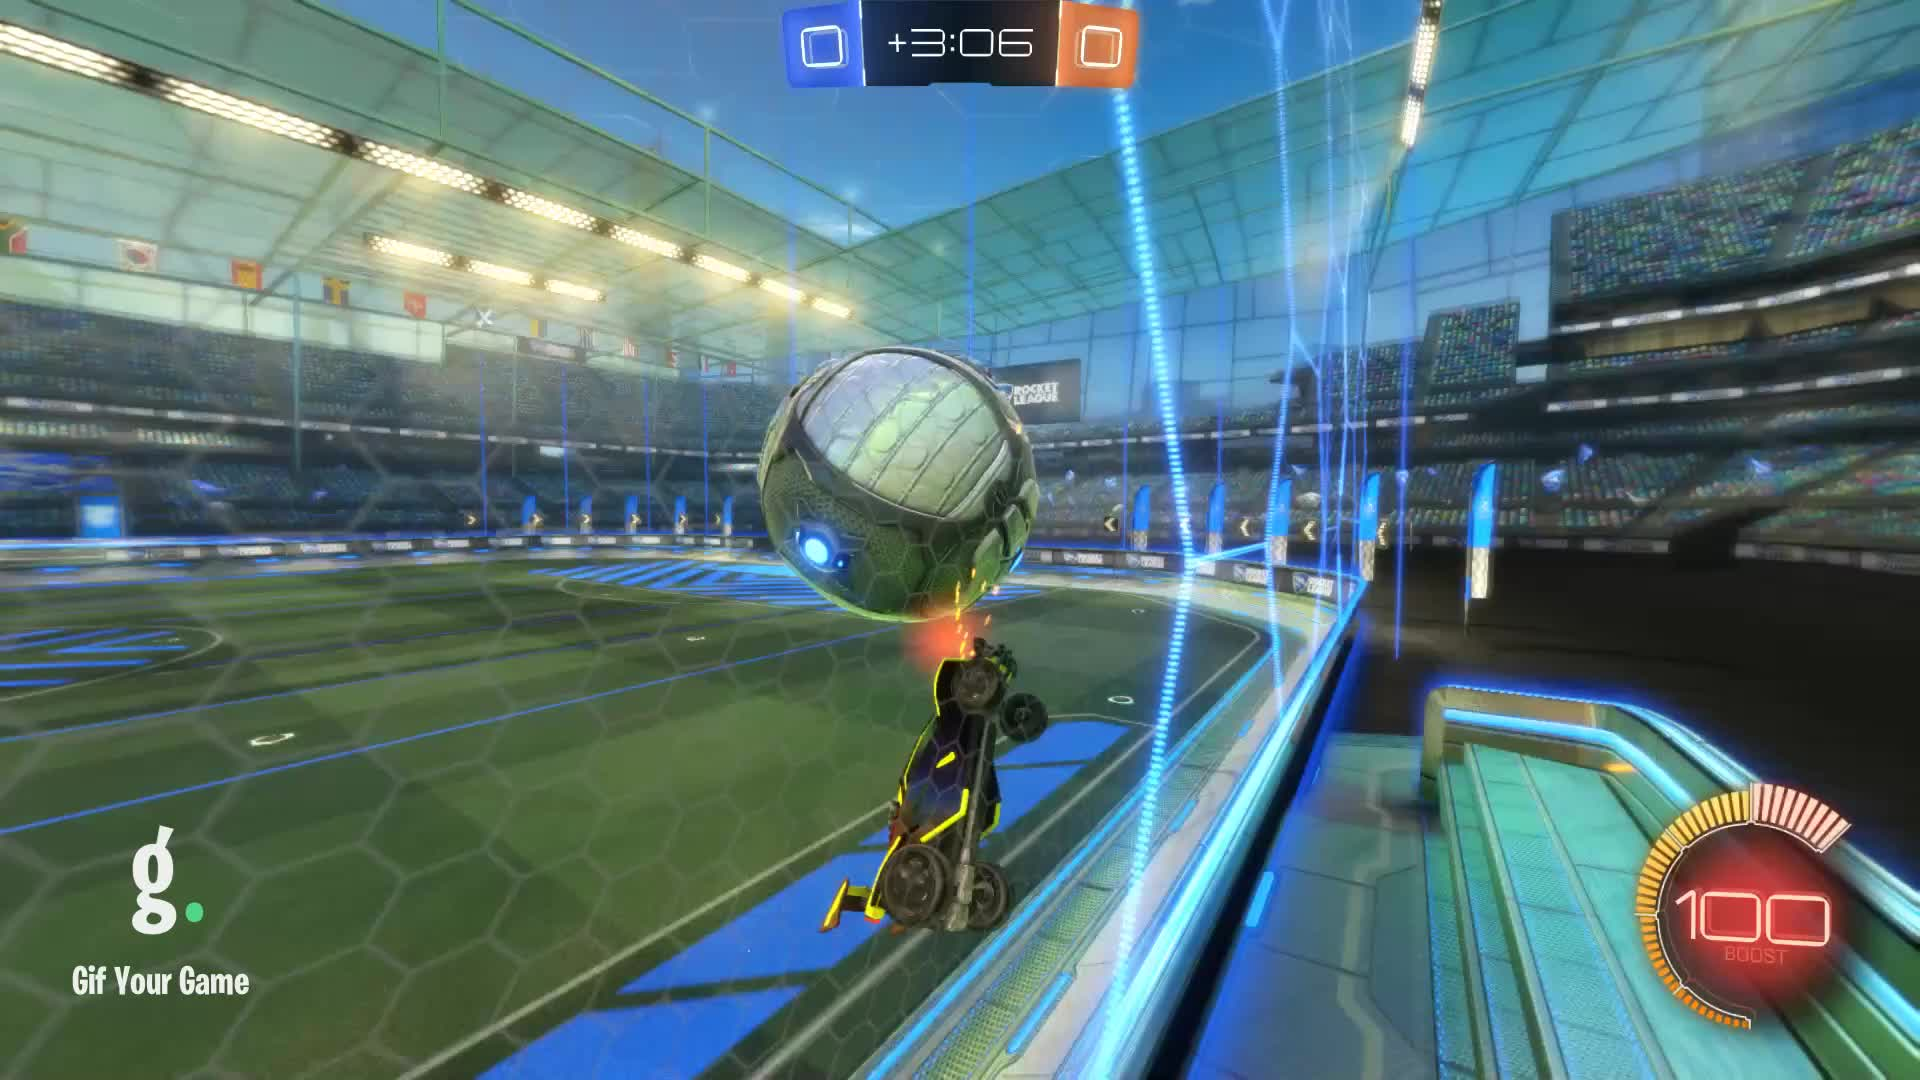 Gif Your Game, GifYourGame, Goal, Marti, Rocket League, RocketLeague, Goal 1: Marti GIFs